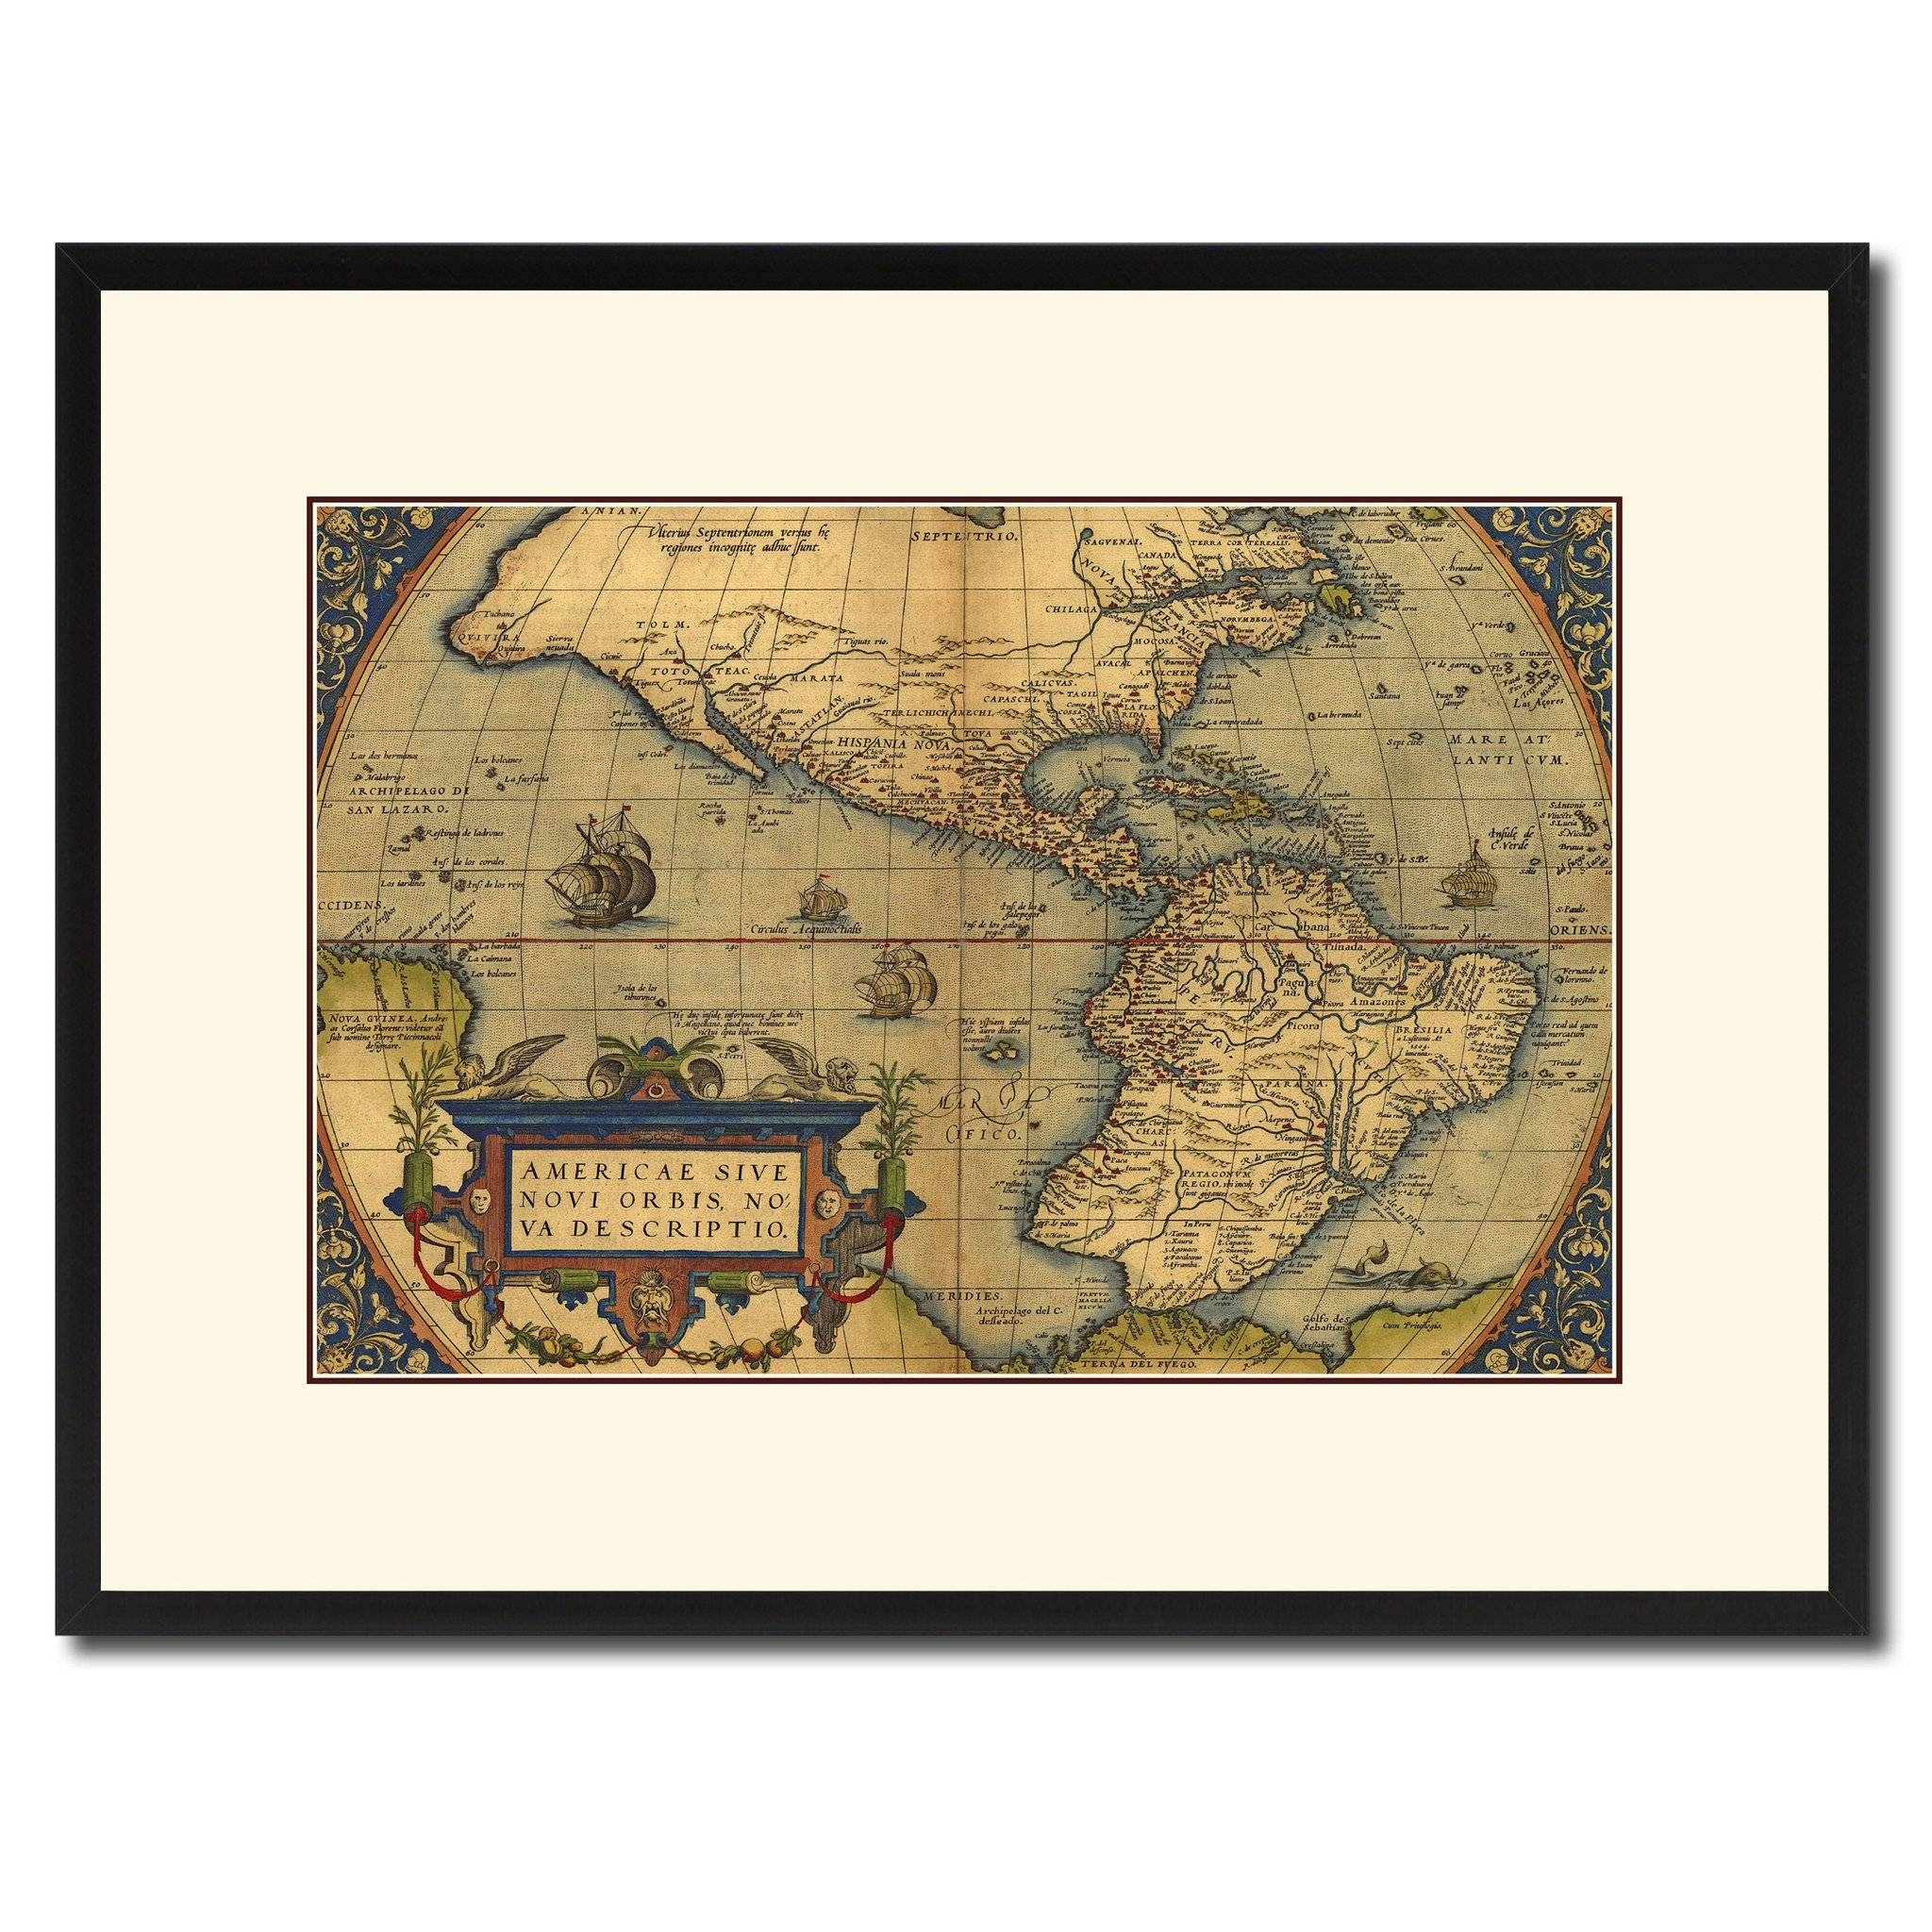 North South America Vintage Antique Map Wall Art Home Decor Gift Throughout Newest Antique Map Wall Art (View 16 of 20)